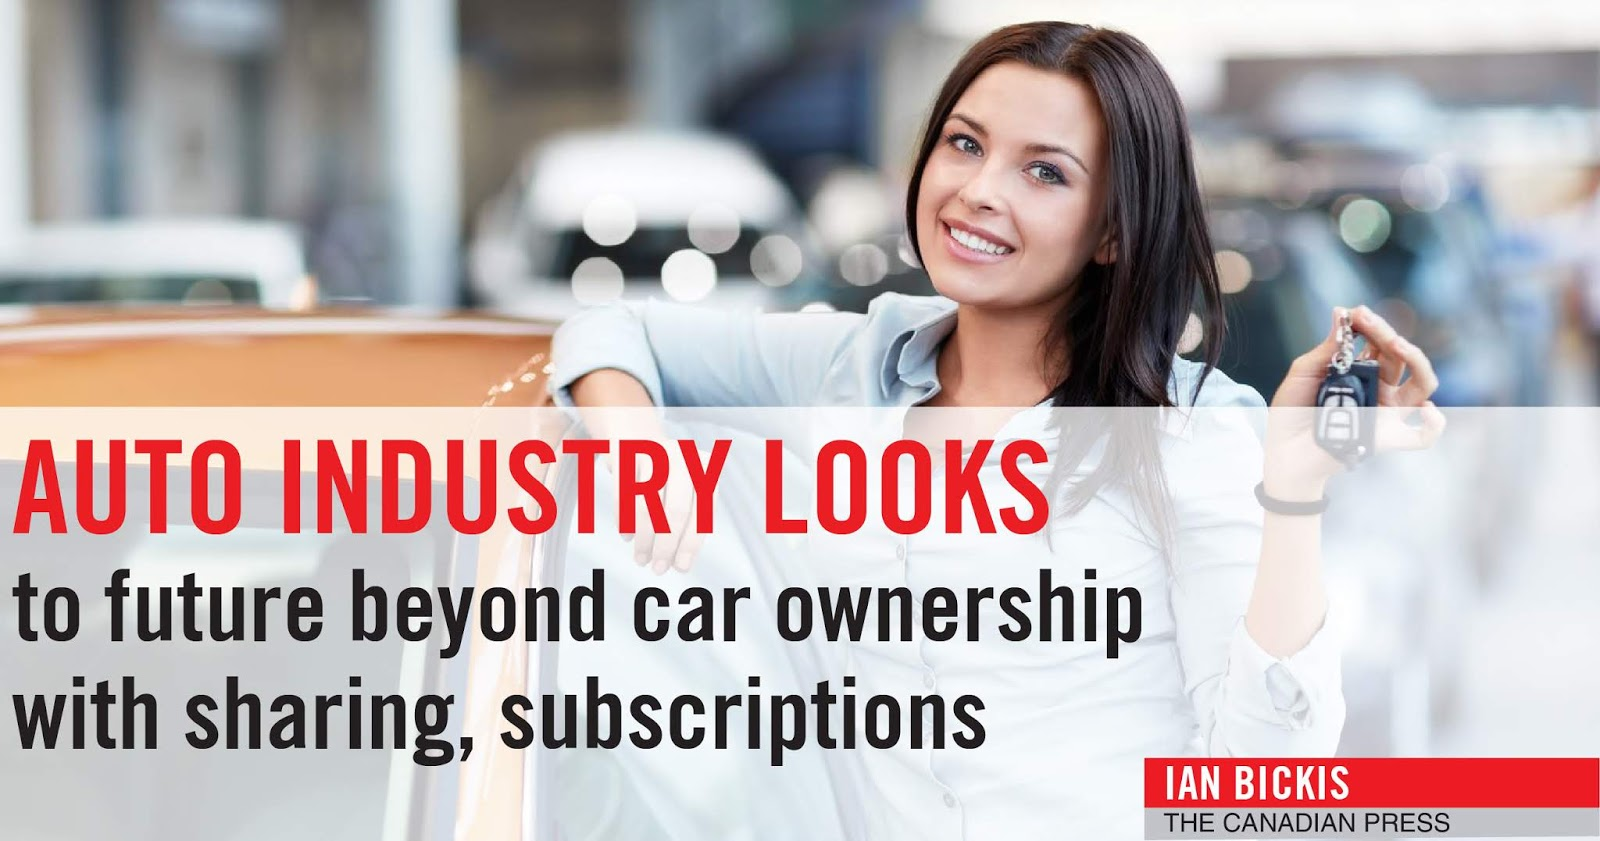 AUTO INDUSTRY LOOKS to future beyond car ownership with sharing, subscriptions